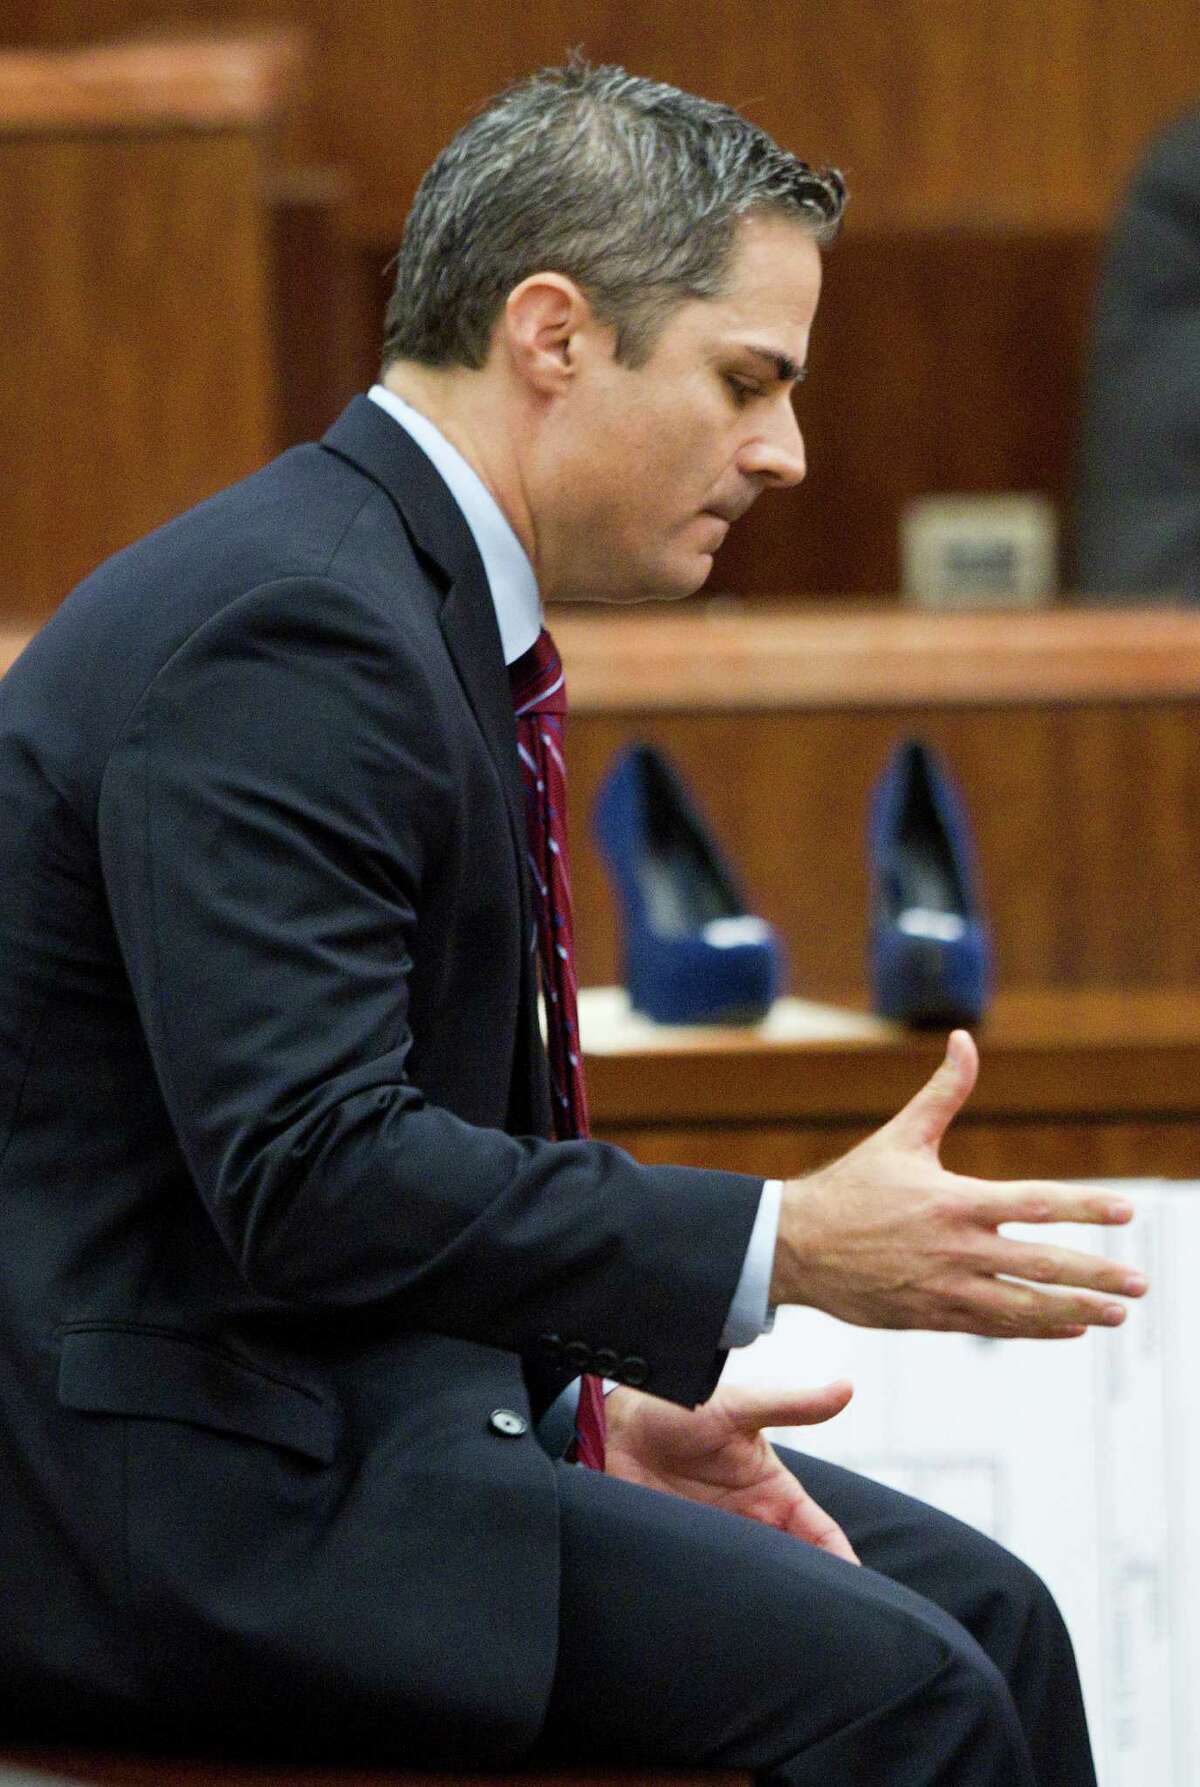 Prosecutor John Jordan gives his closing argument in the punishment phase of the trial against convicted killer Ana Trujillo on Friday, April 11, 2014, in Houston. Trujillo was convicted in the brutal 2013 slaying of her boyfriend, Alf Stefan Andersson, using a 5-inch stiletto shoe. ( Brett Coomer / Houston Chronicle )